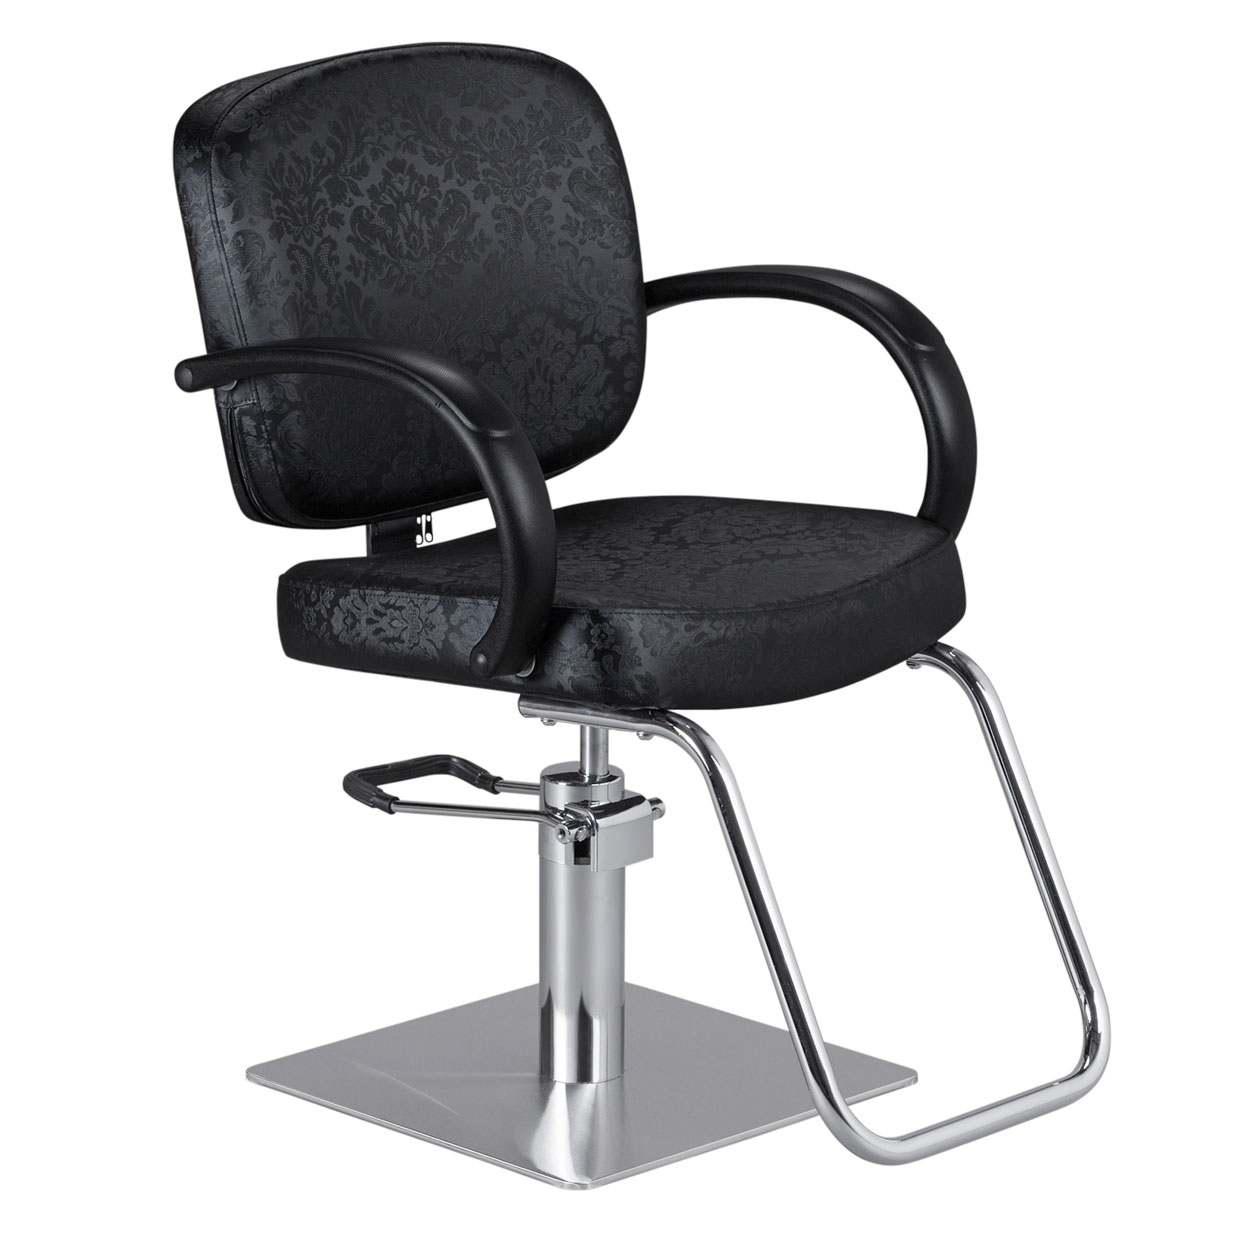 Pibbs 3606 Messina Styling Chair alternative product image 5